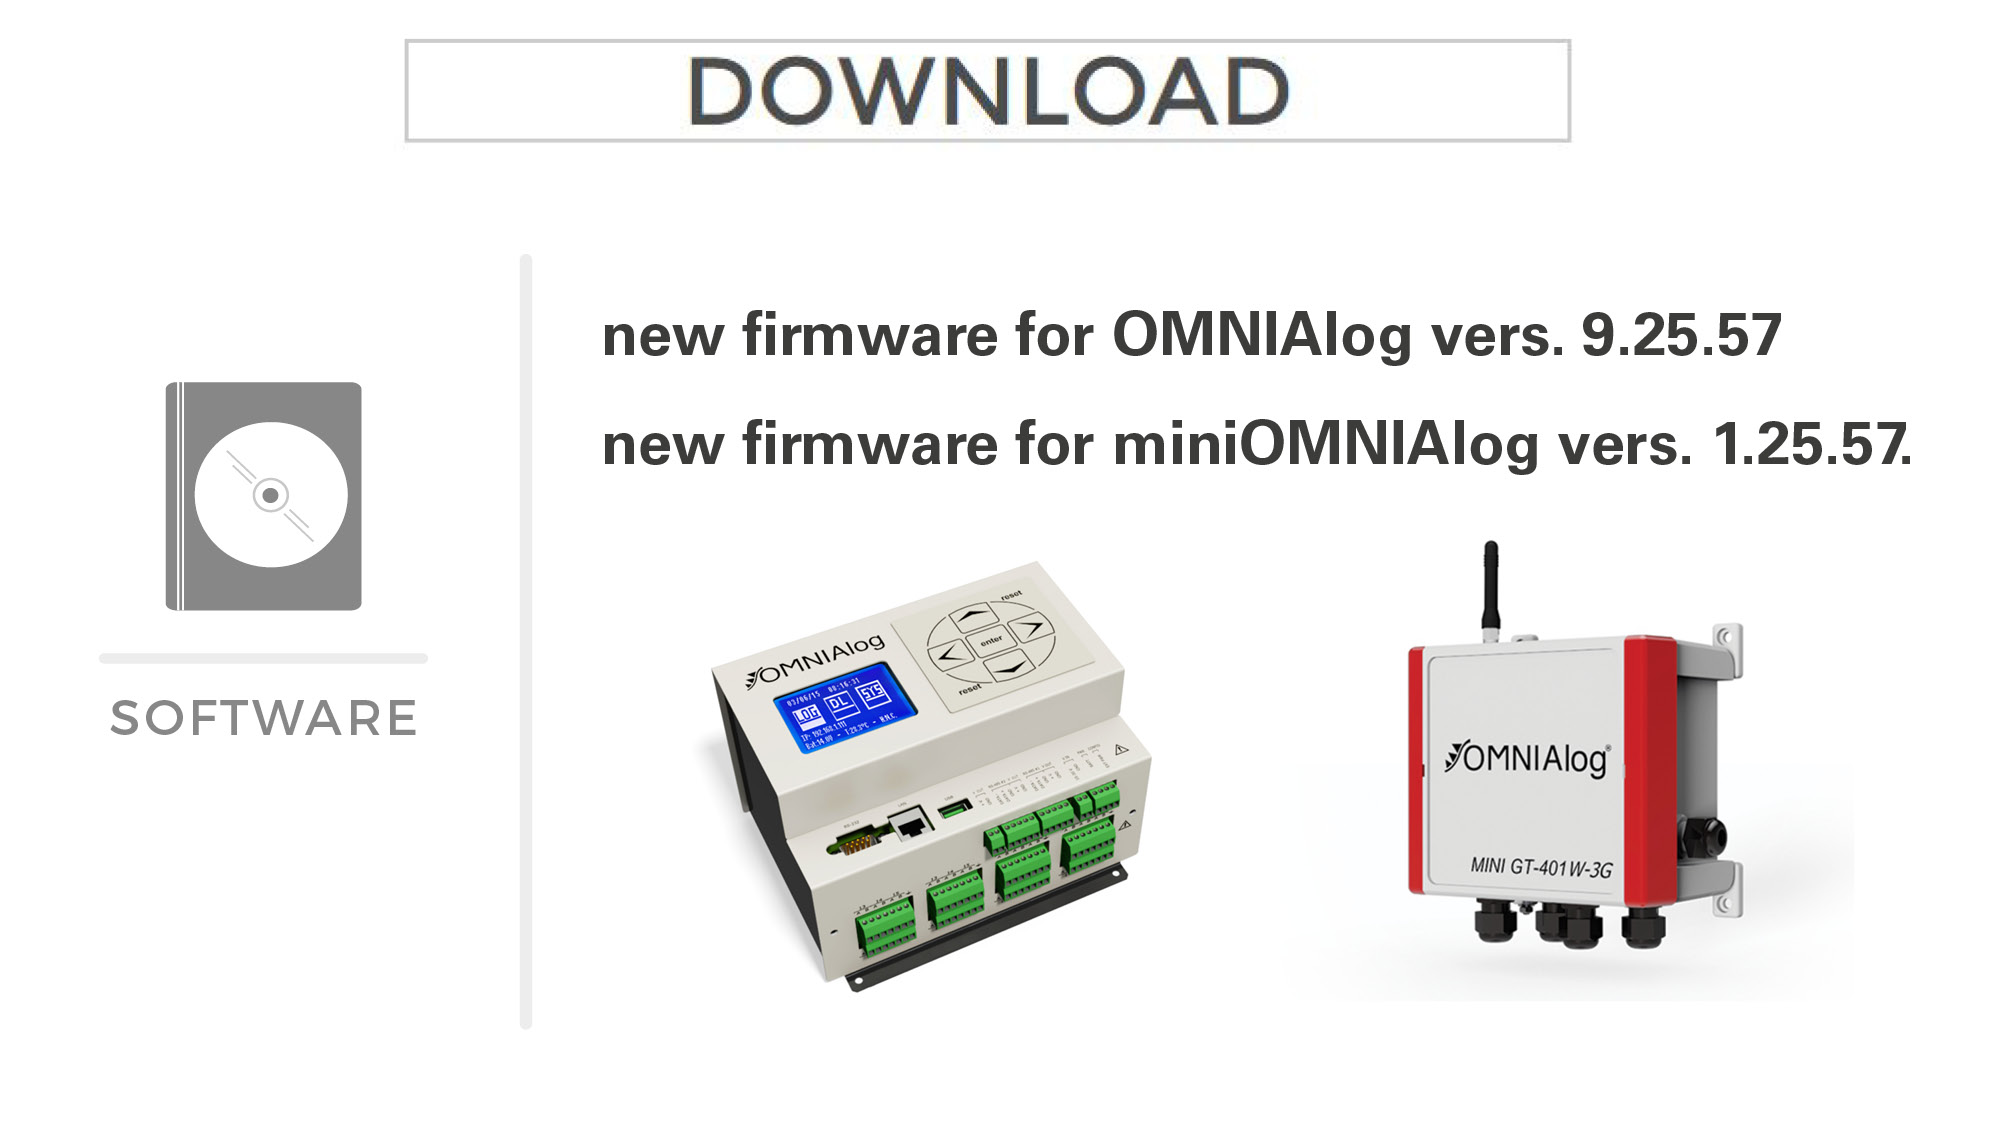 New firmware for OMNIAlog and MiniOMNIAlog